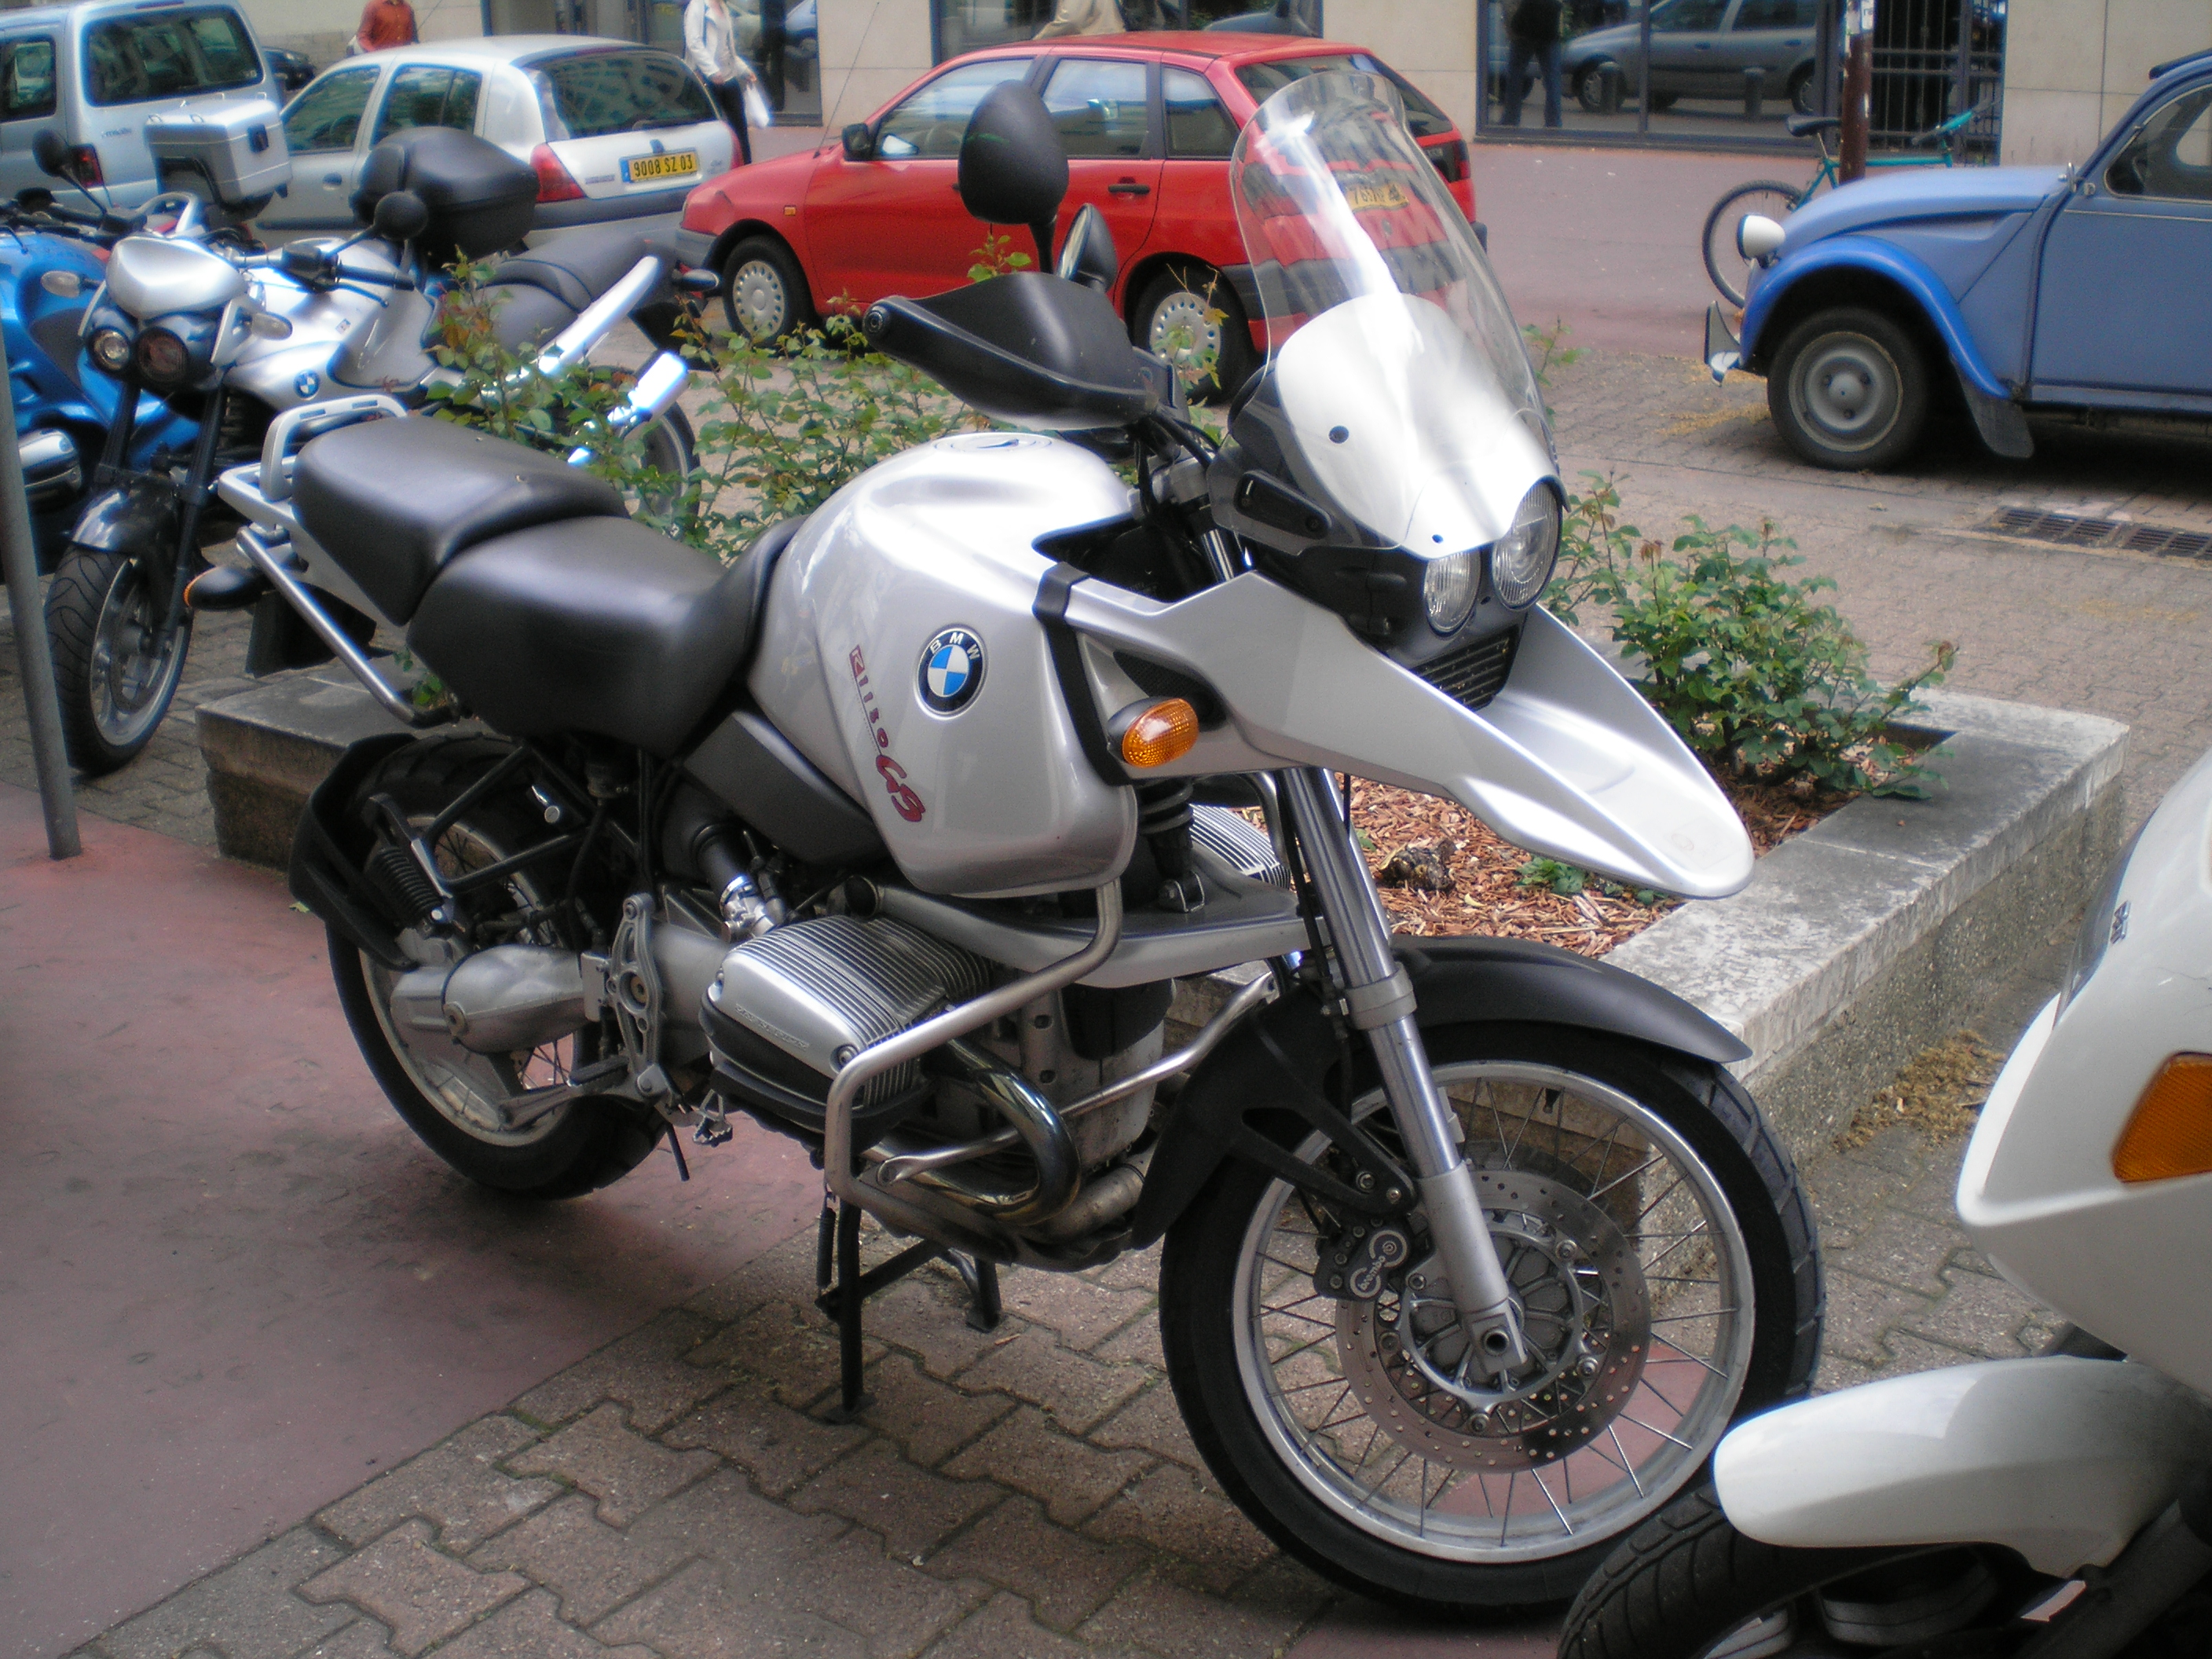 BMW R850GS 1998 images #7038